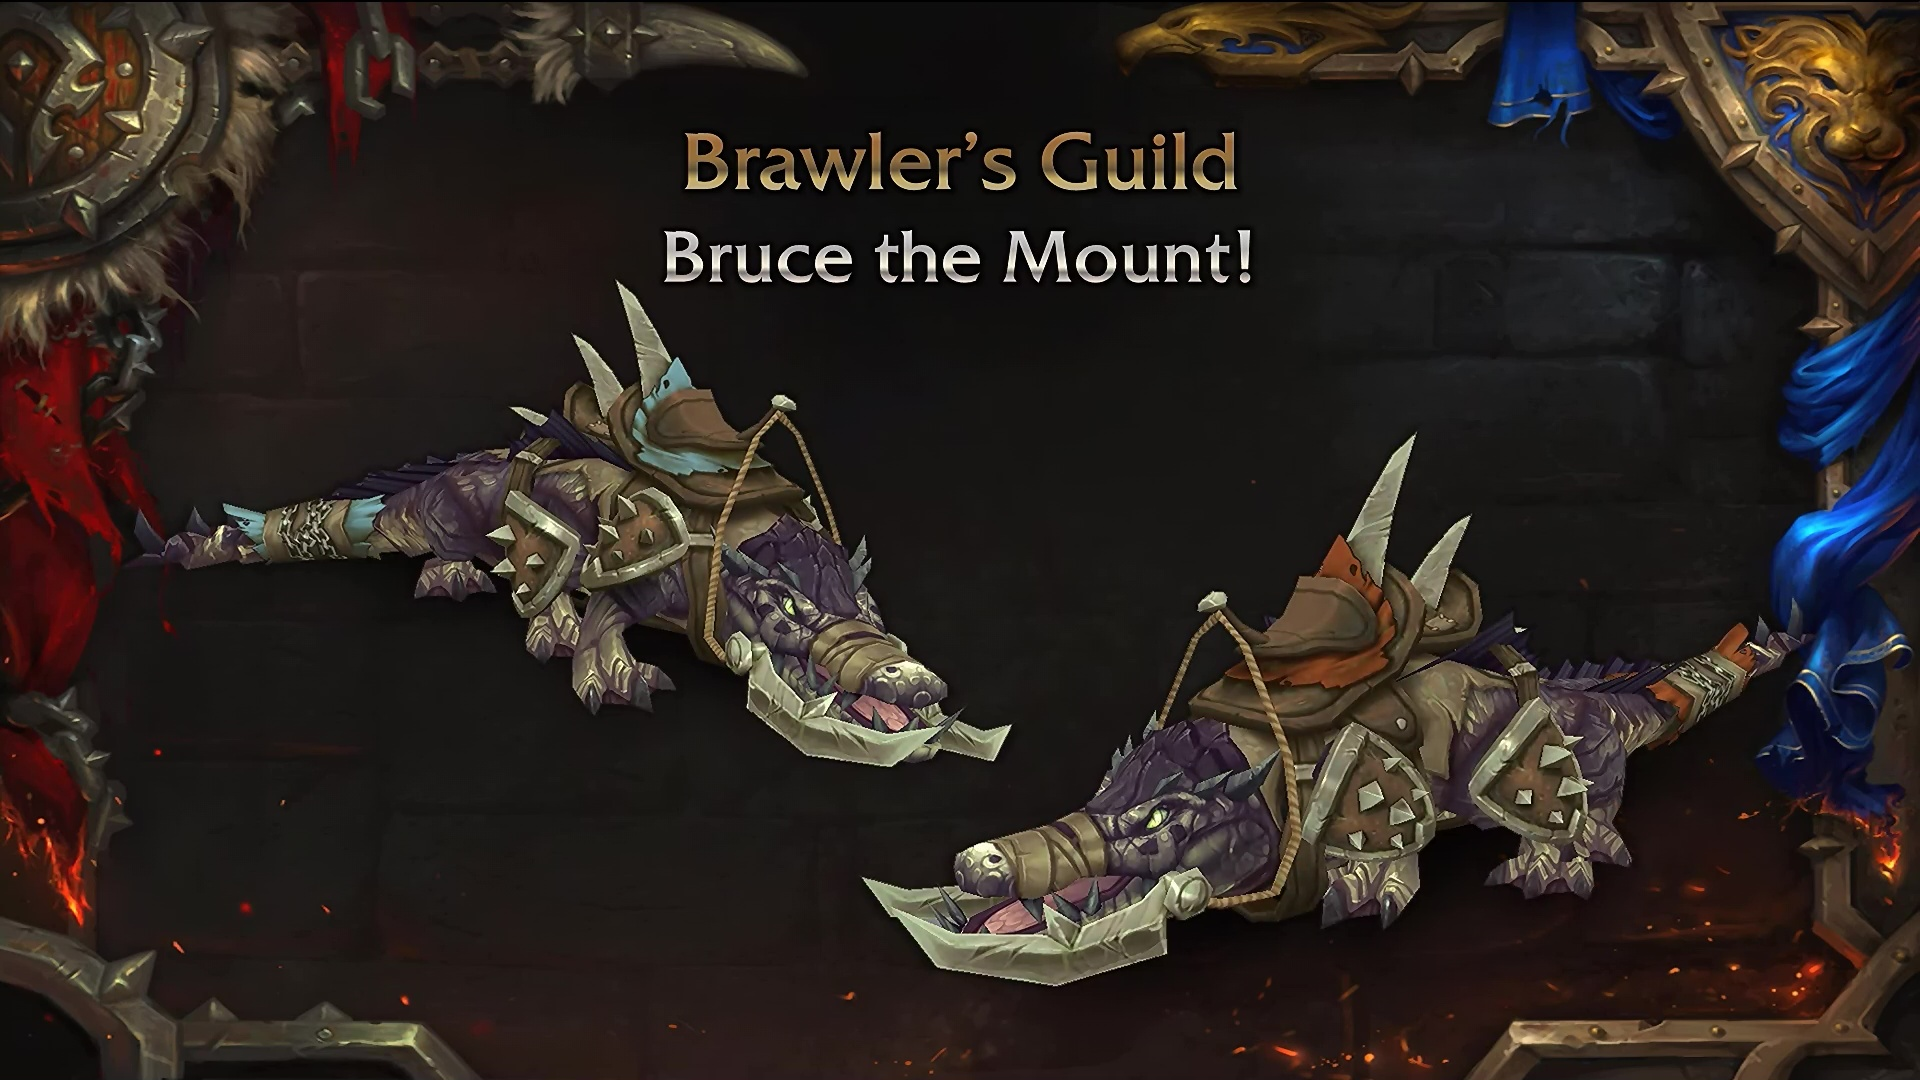 Brawler's Guild bruce the mount